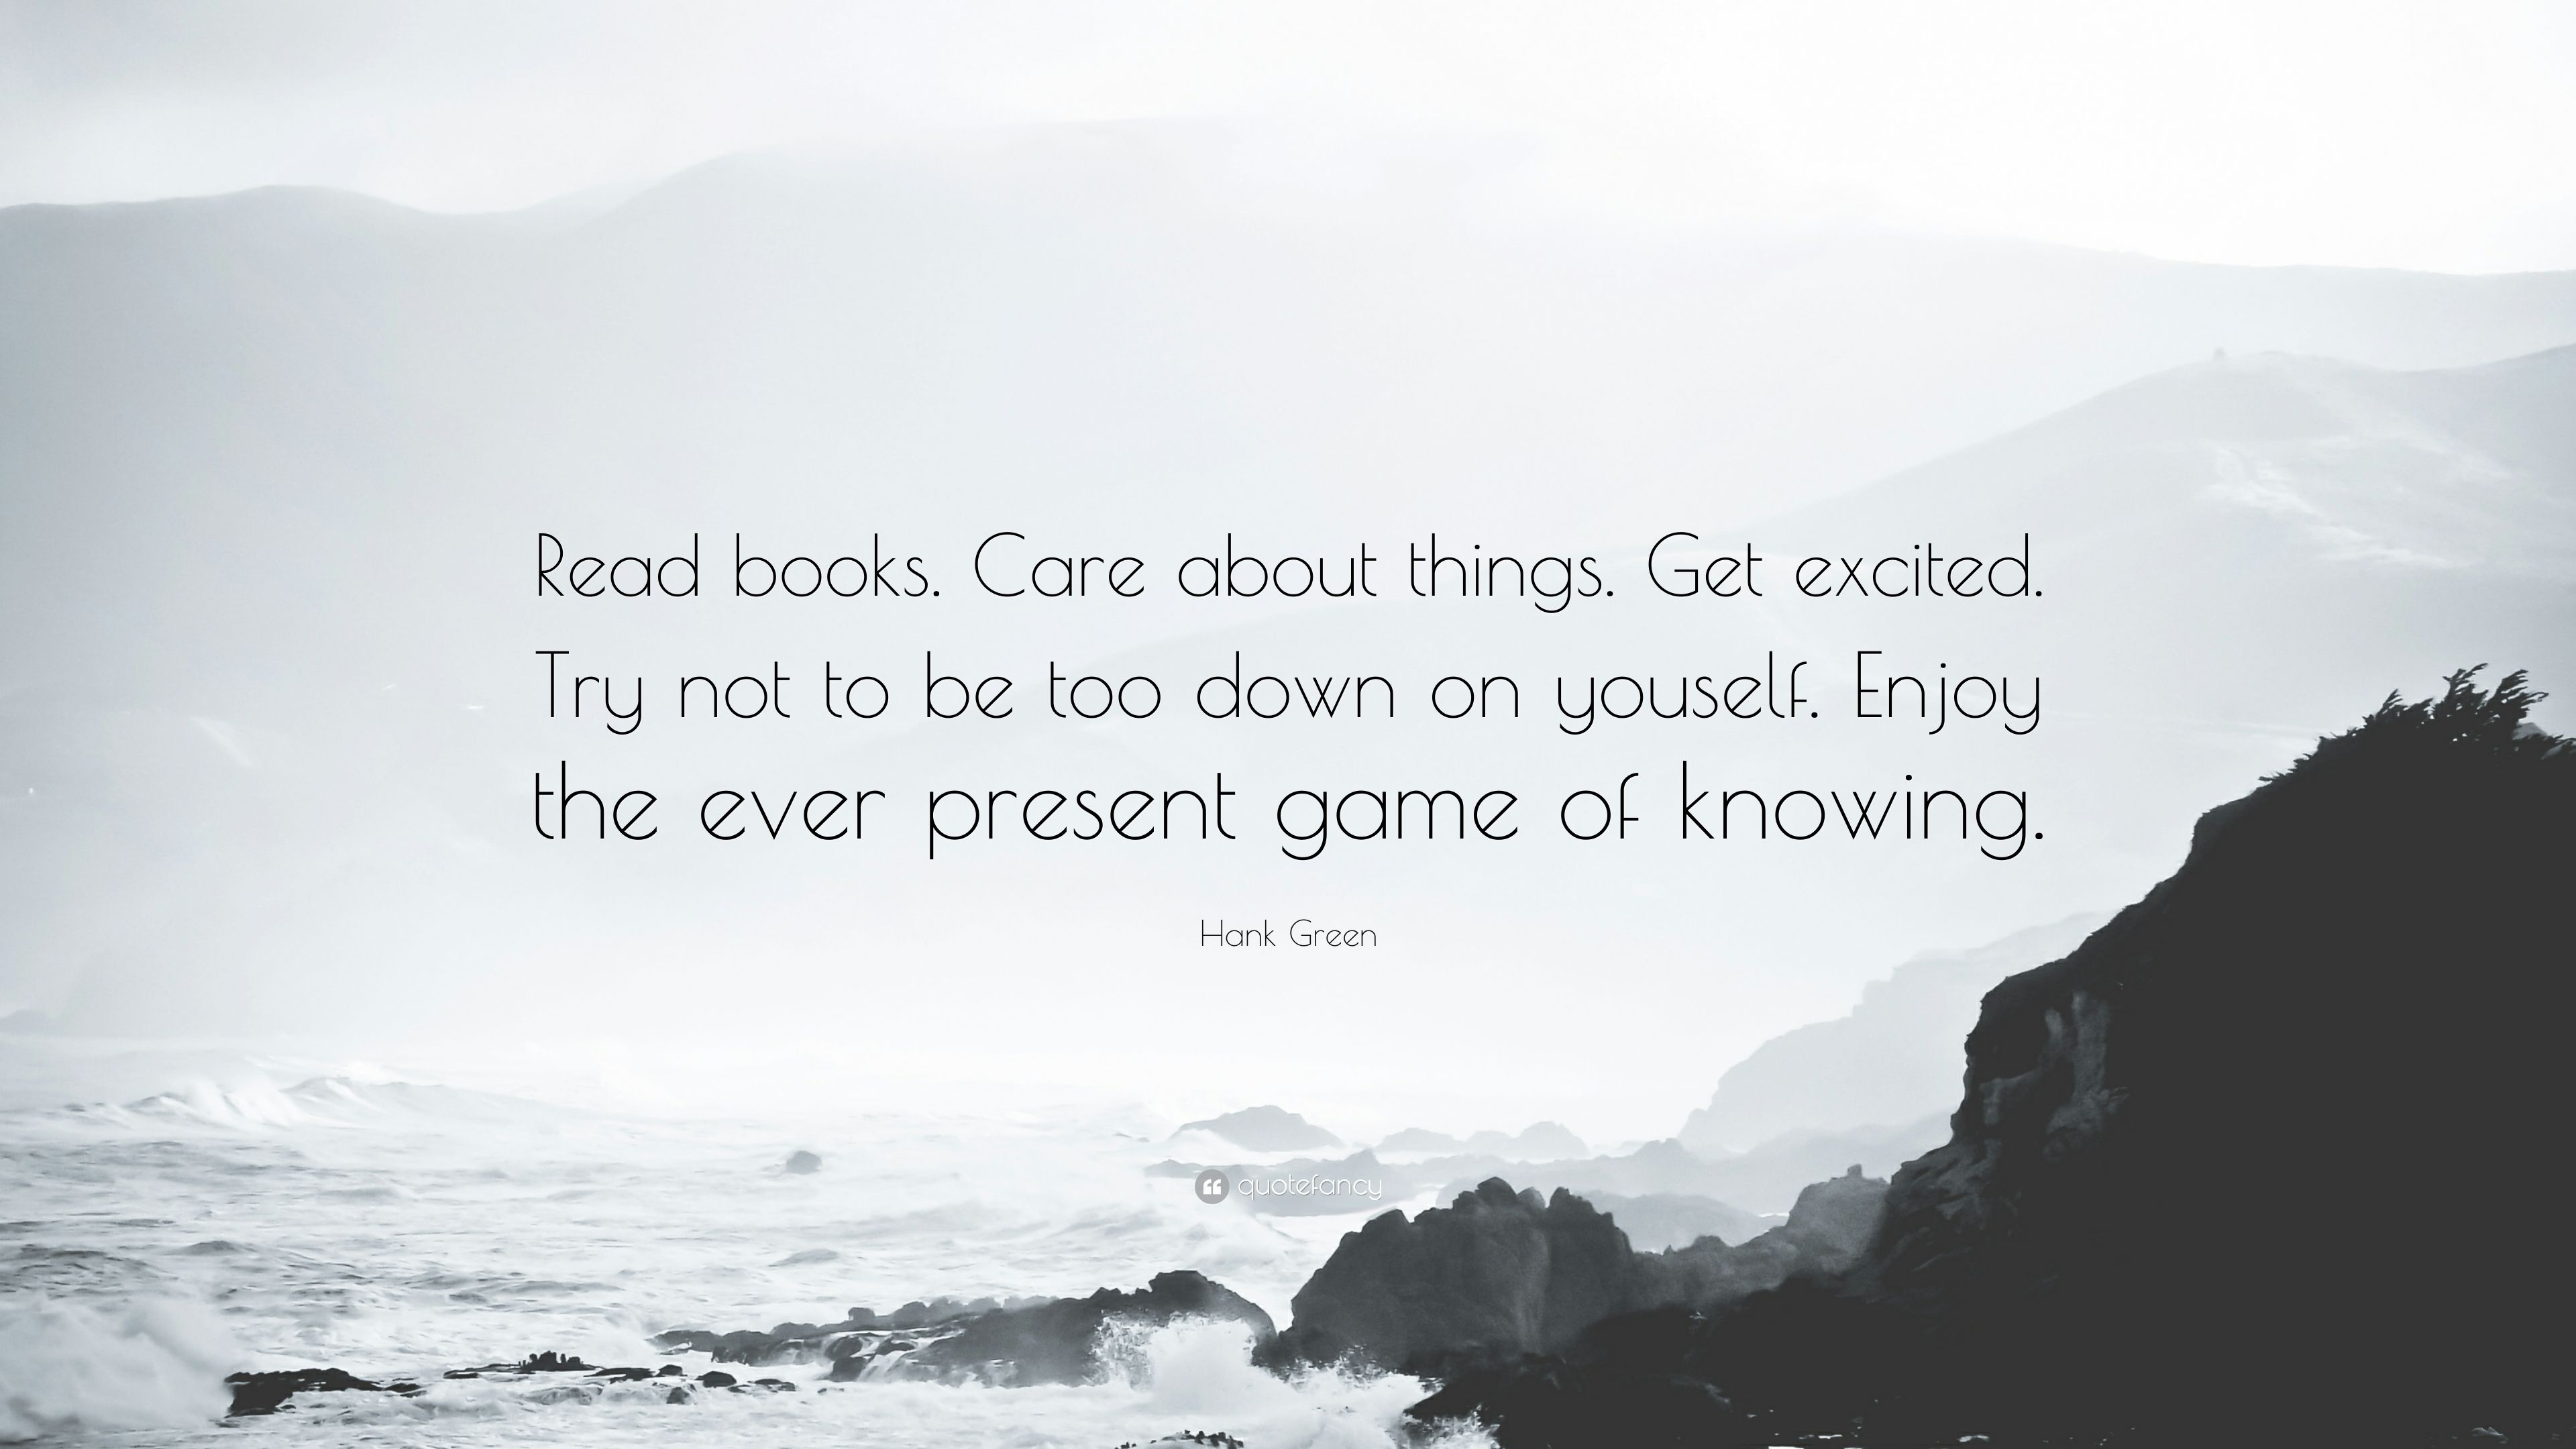 Superior Hank Green Quote: U201cRead Books. Care About Things. Get Excited. Try